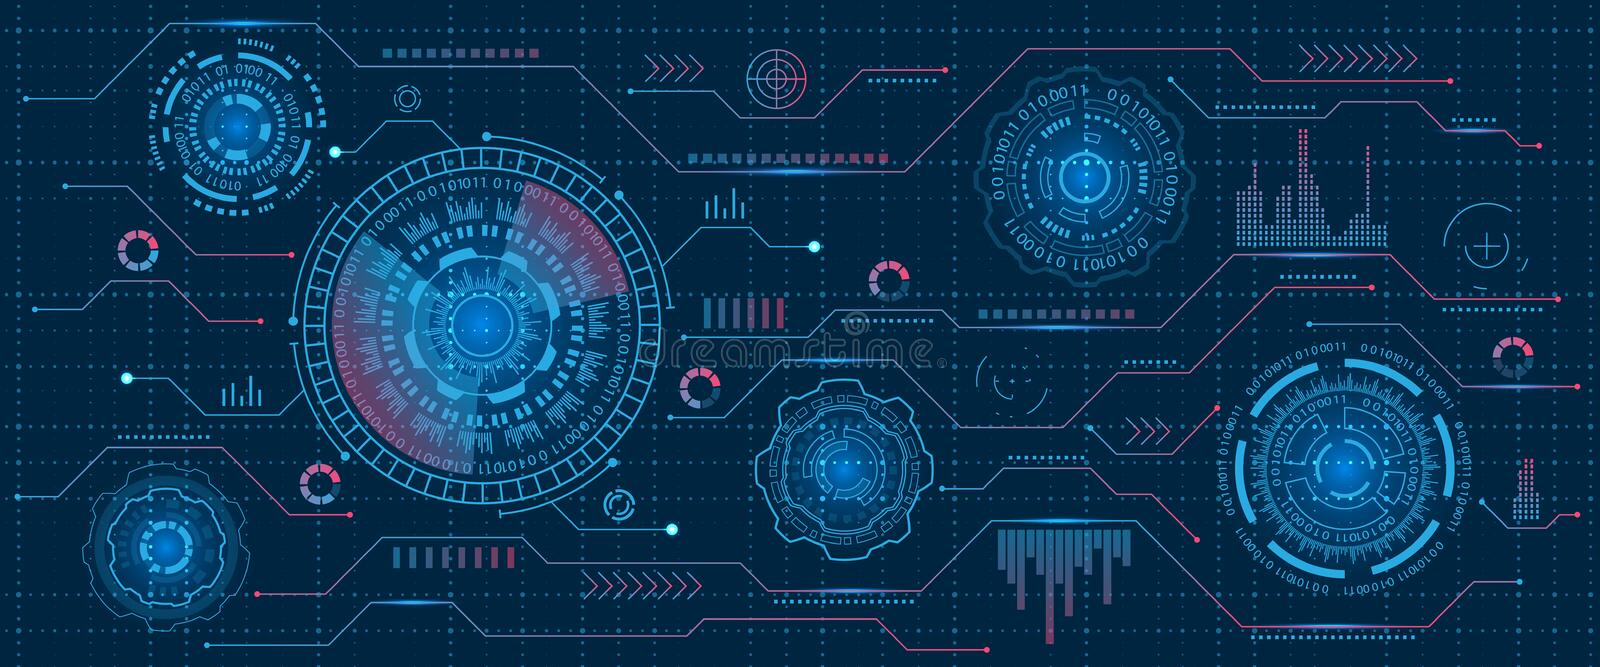 Futuristic Interface Hud Design, Infographic Elements,Tech and Science, Analysis Theme, Template UI for App and Virtual vector illustration